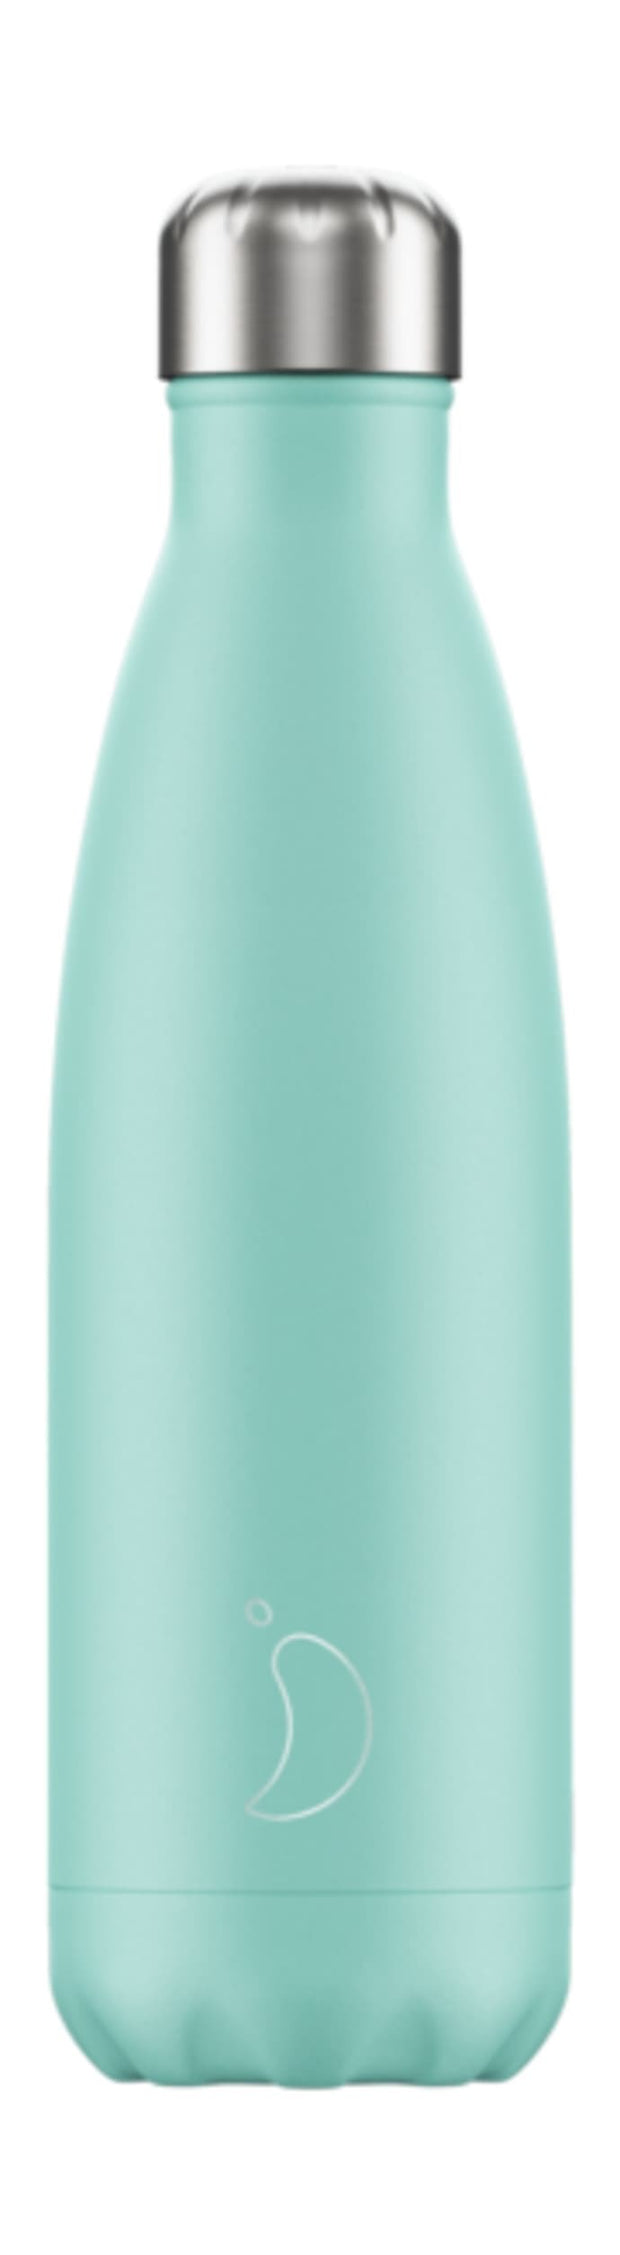 Pastel Green Insulated Bottle - 500ml